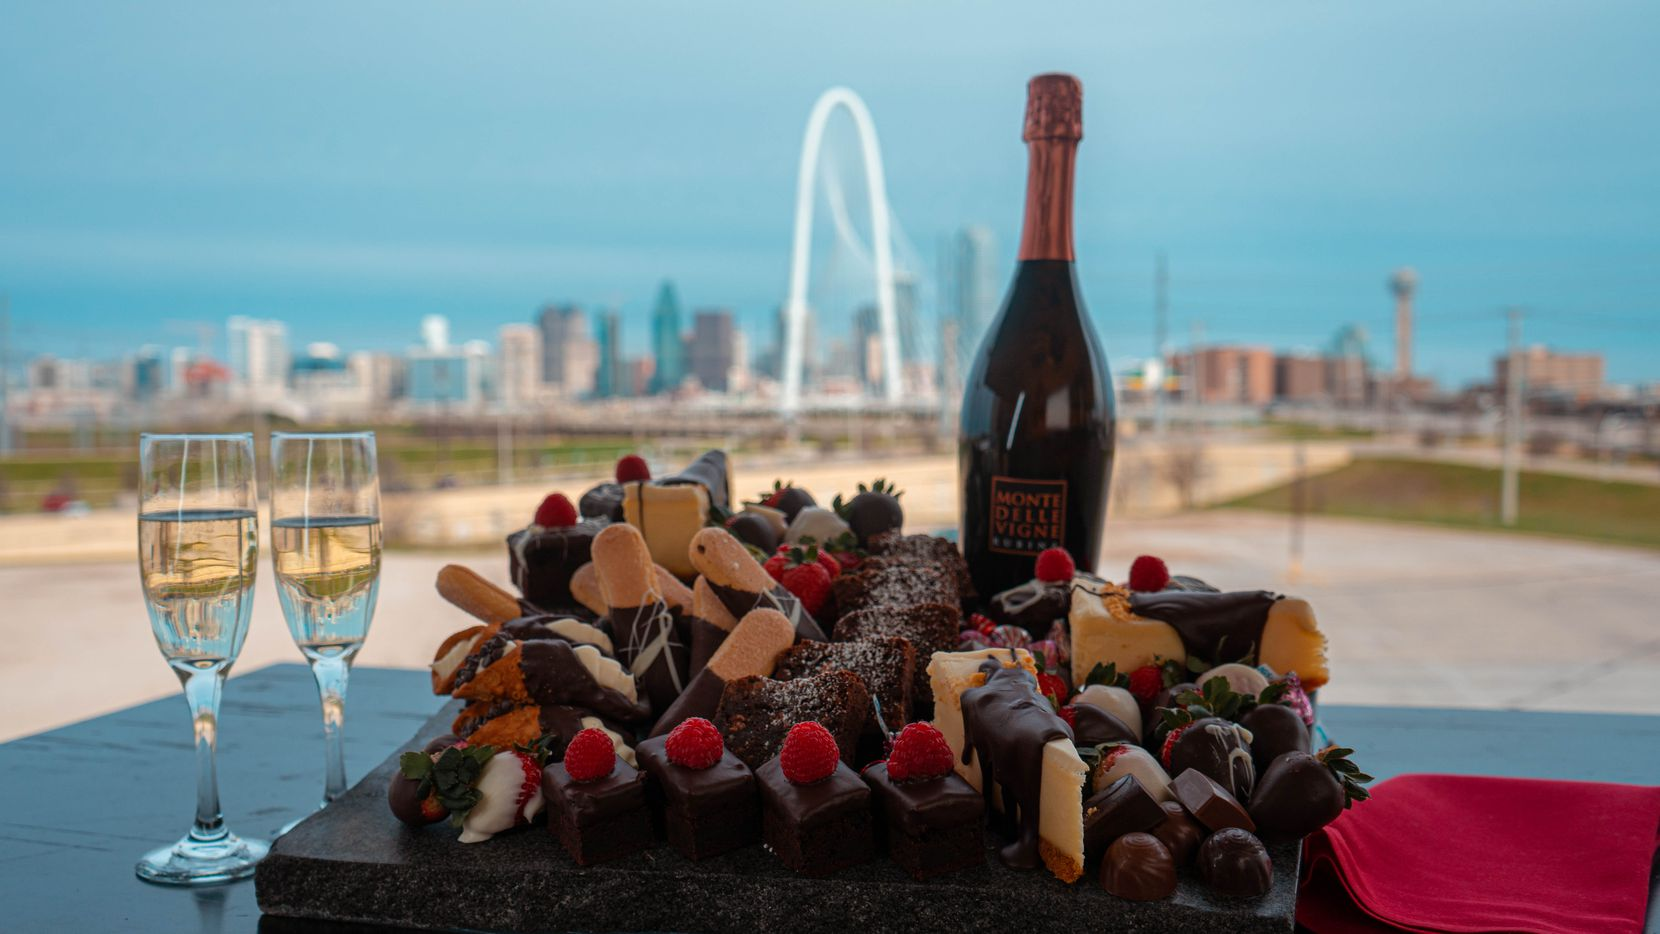 For Valentine's Day, Saint Rocco's is hosting Love on the Rooftop, where couples can indulge in Champagne and chocolate pairings while admiring the Dallas skyline.